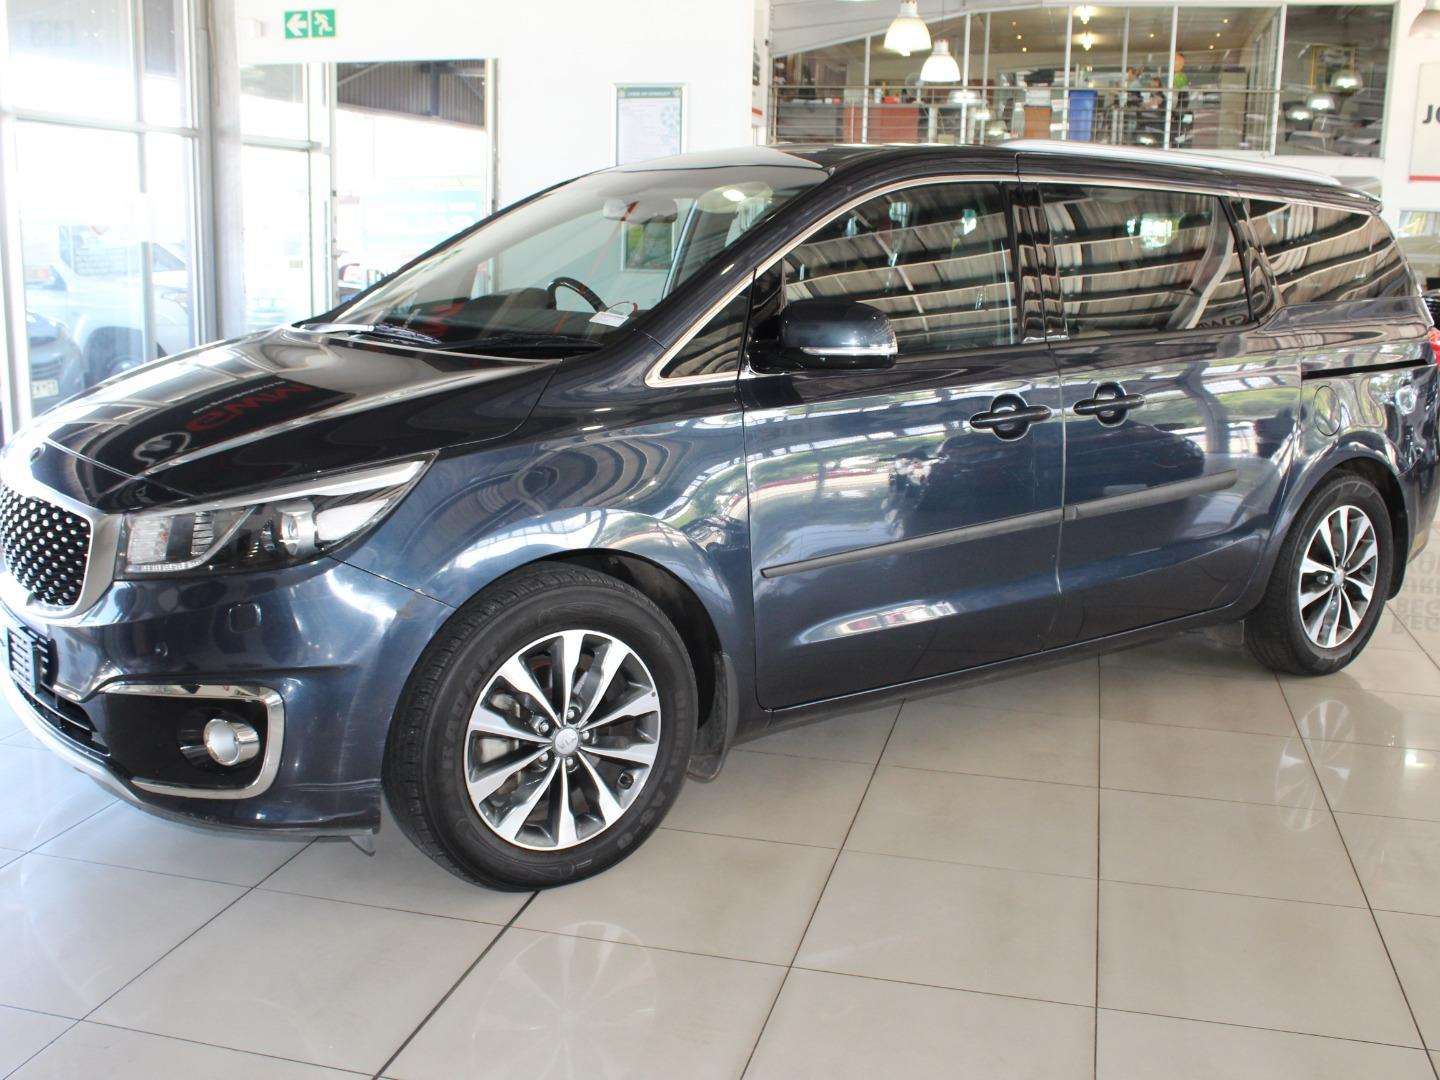 2015 Kia Grand Sedona 2.2CRDi SX- Picture 4